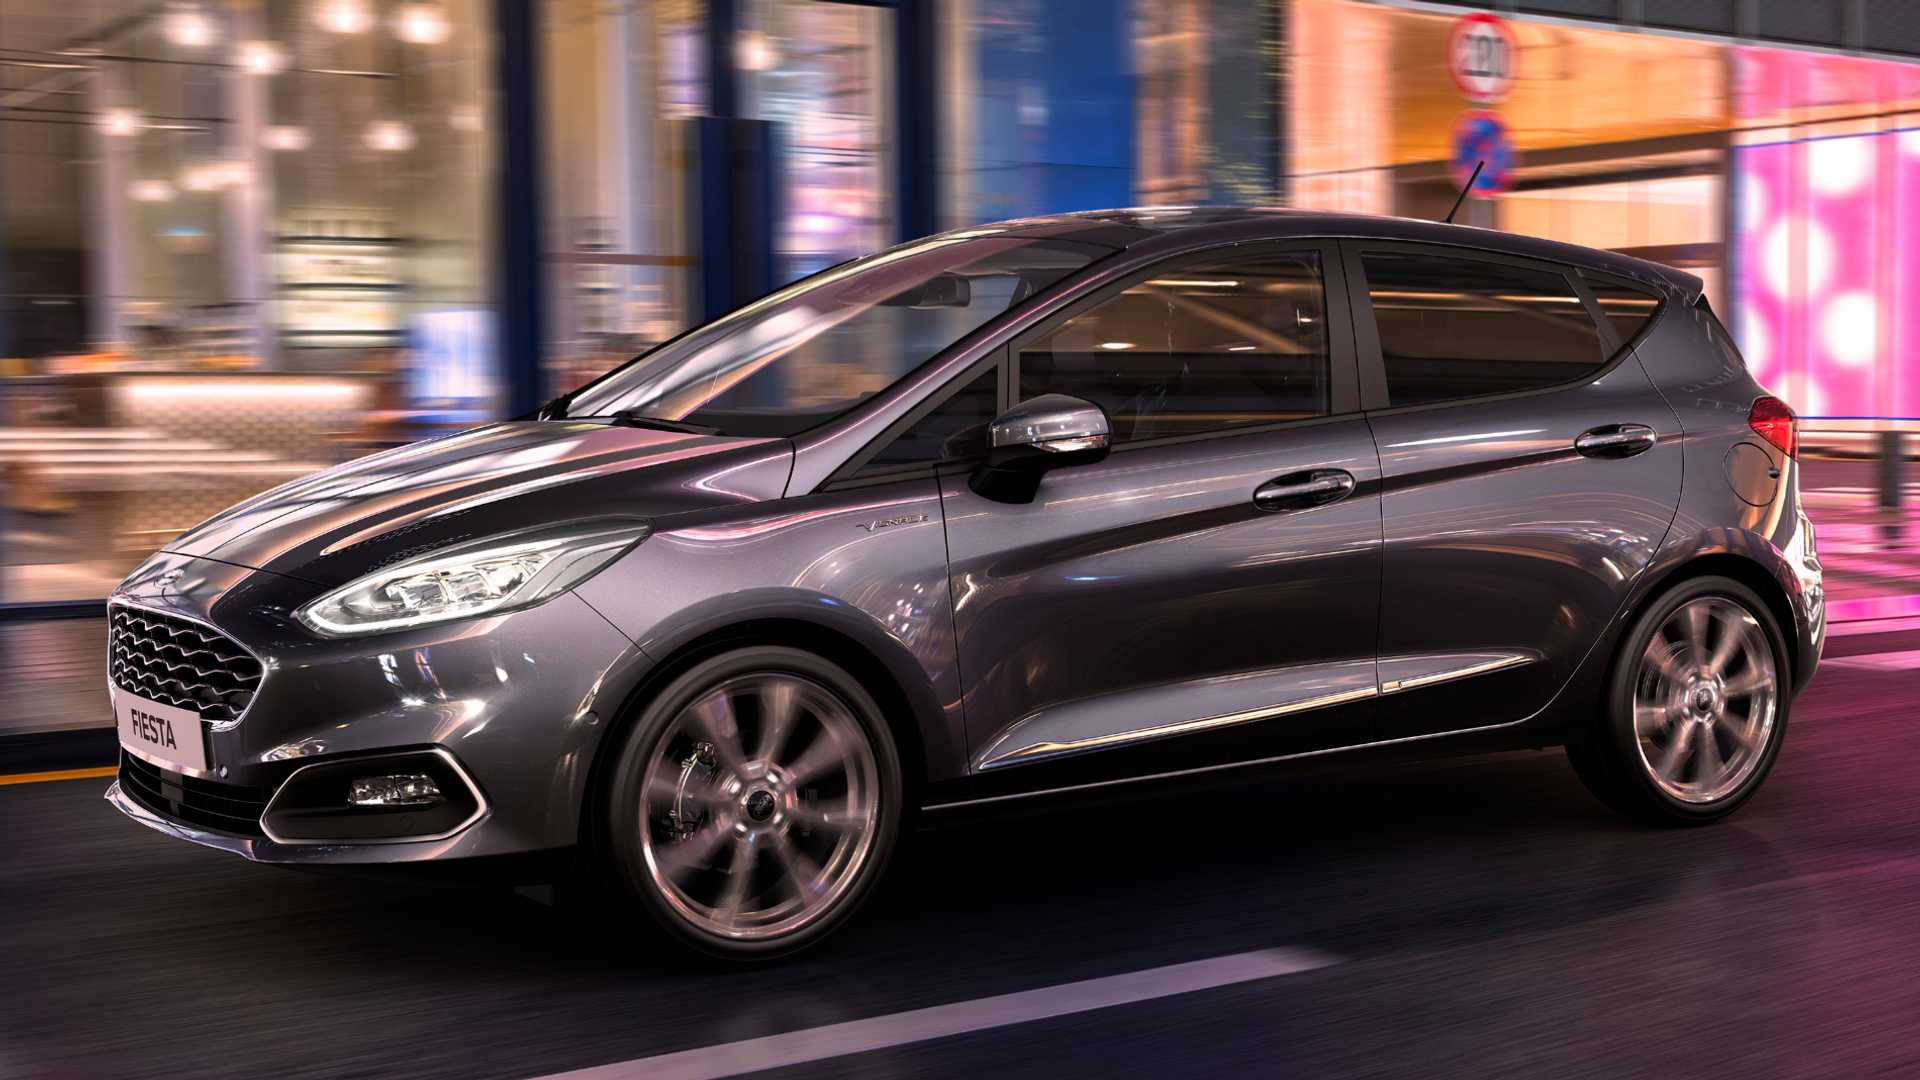 2020 Ford Fiesta Vignale drives using new driving assistance technology in the city